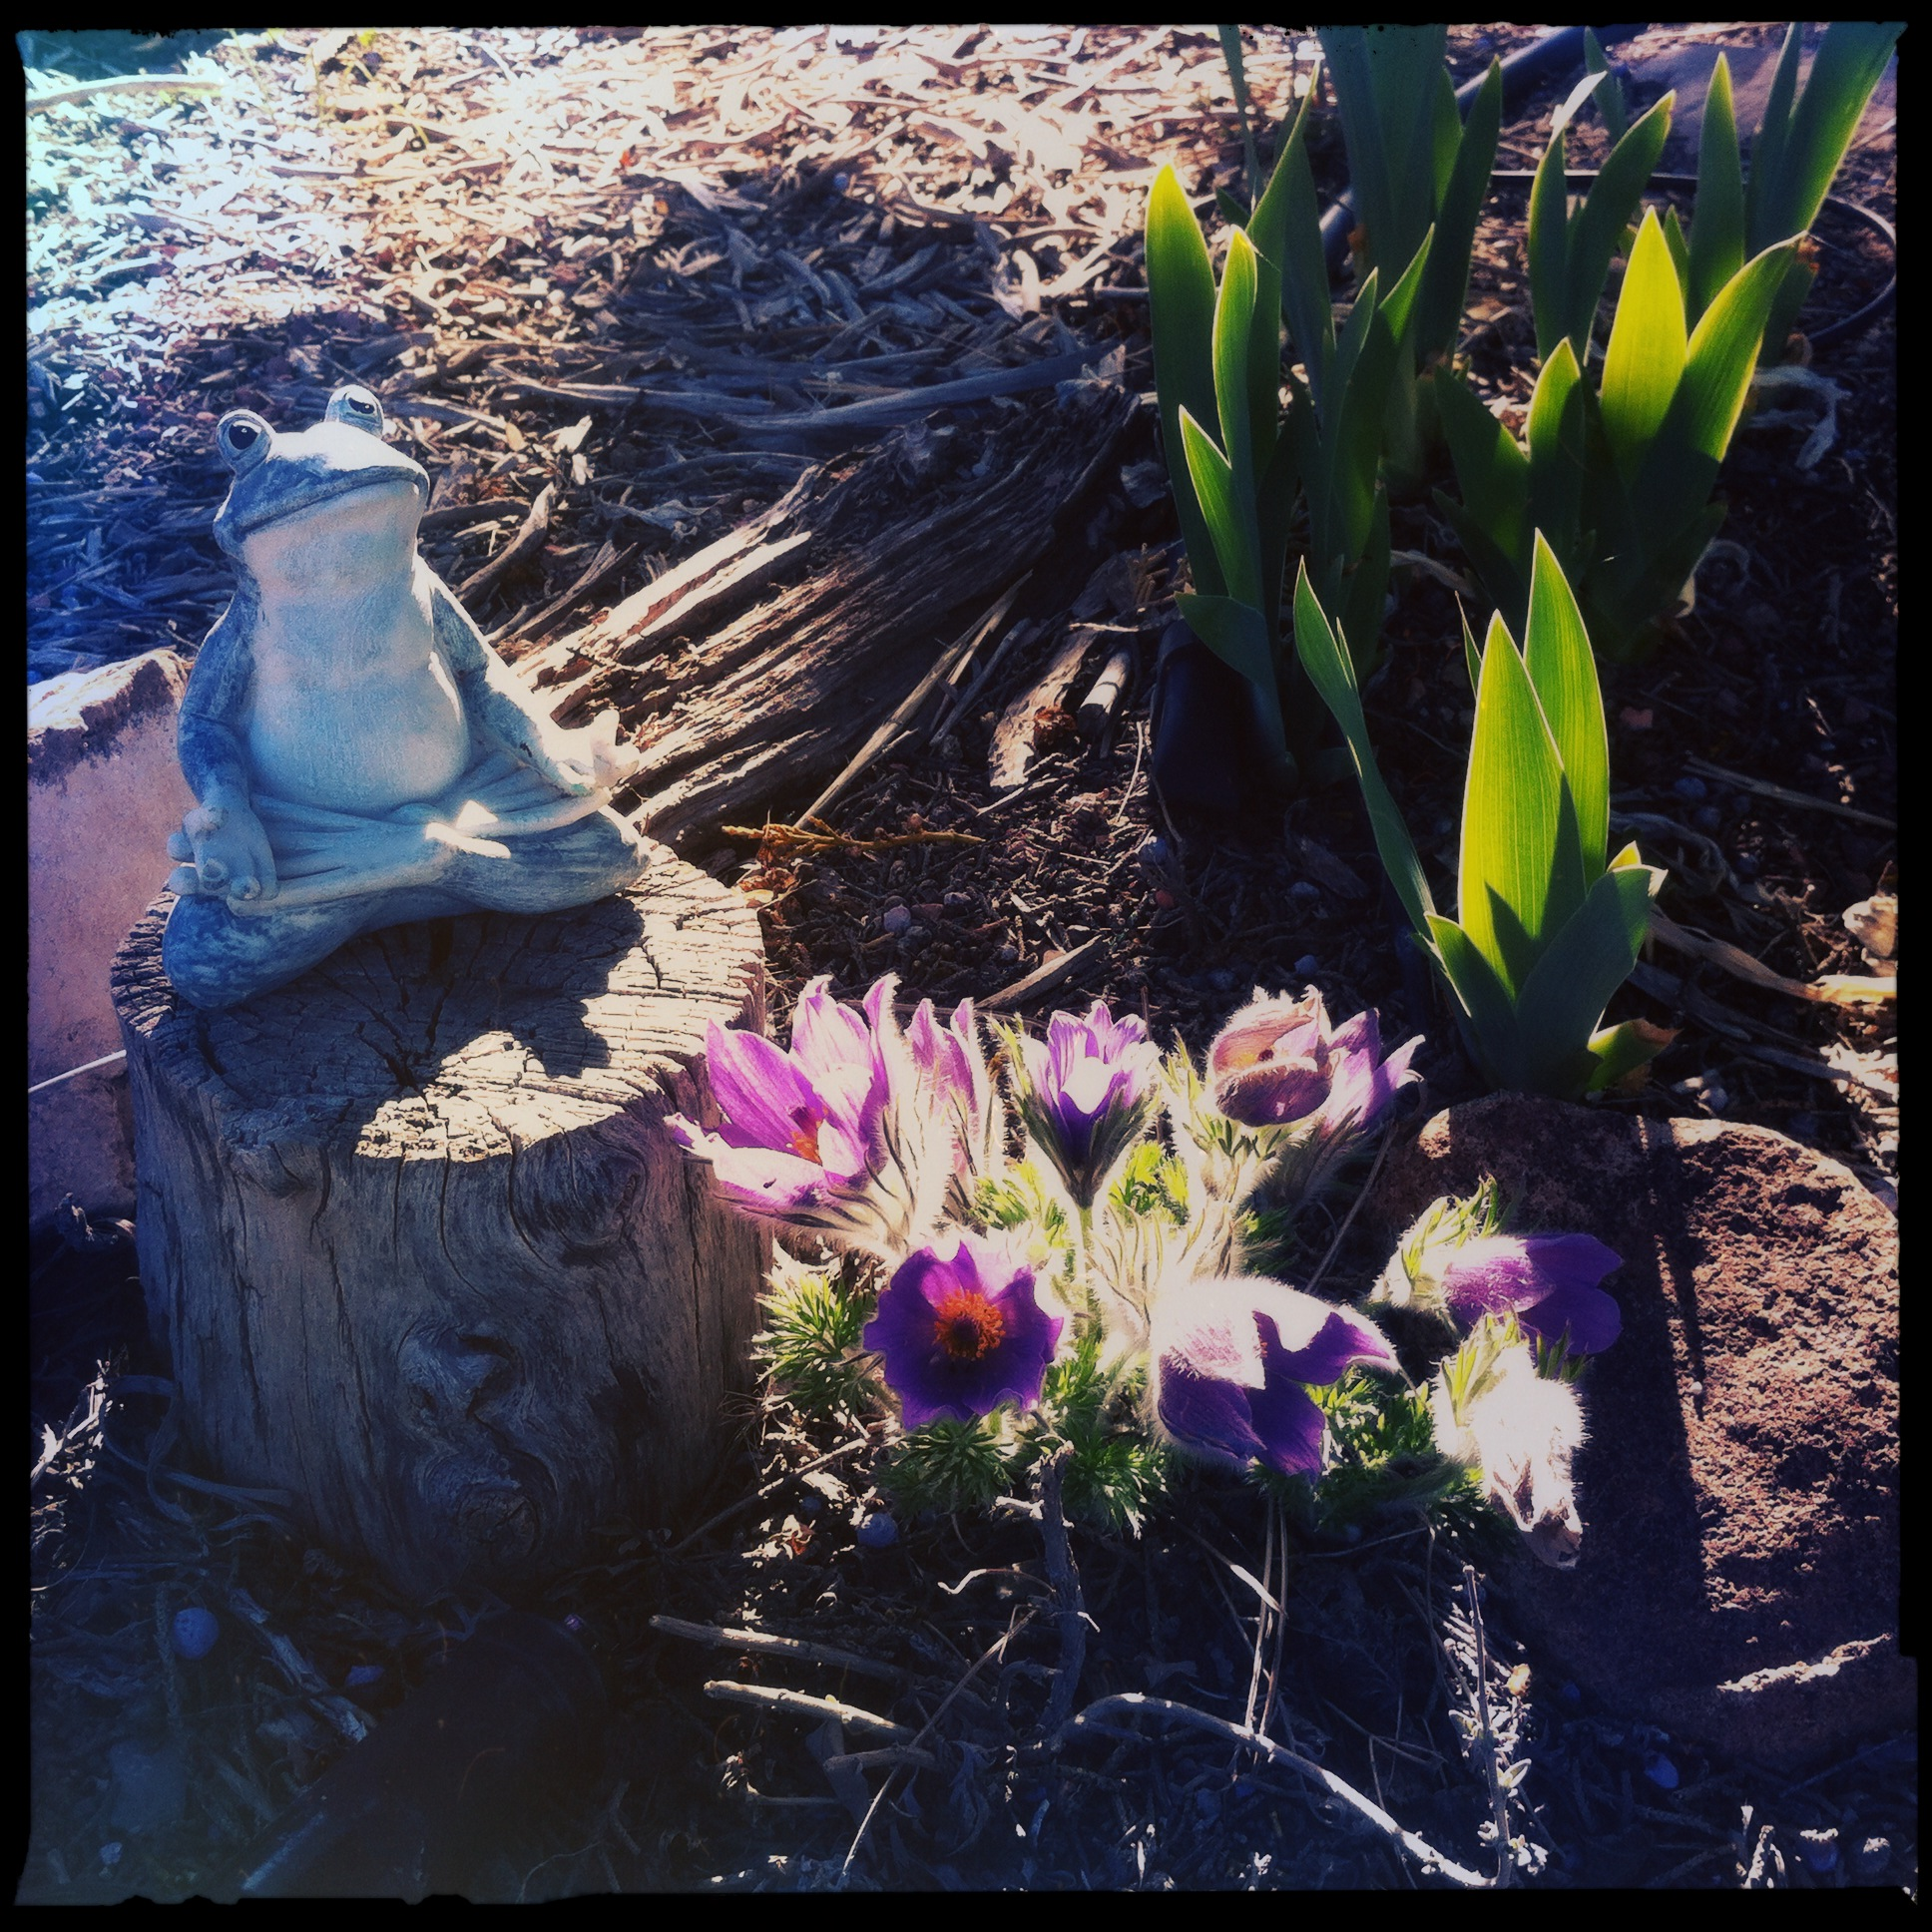 Another frog watches over European pasqueflower and iris shoots by the bottle wall.